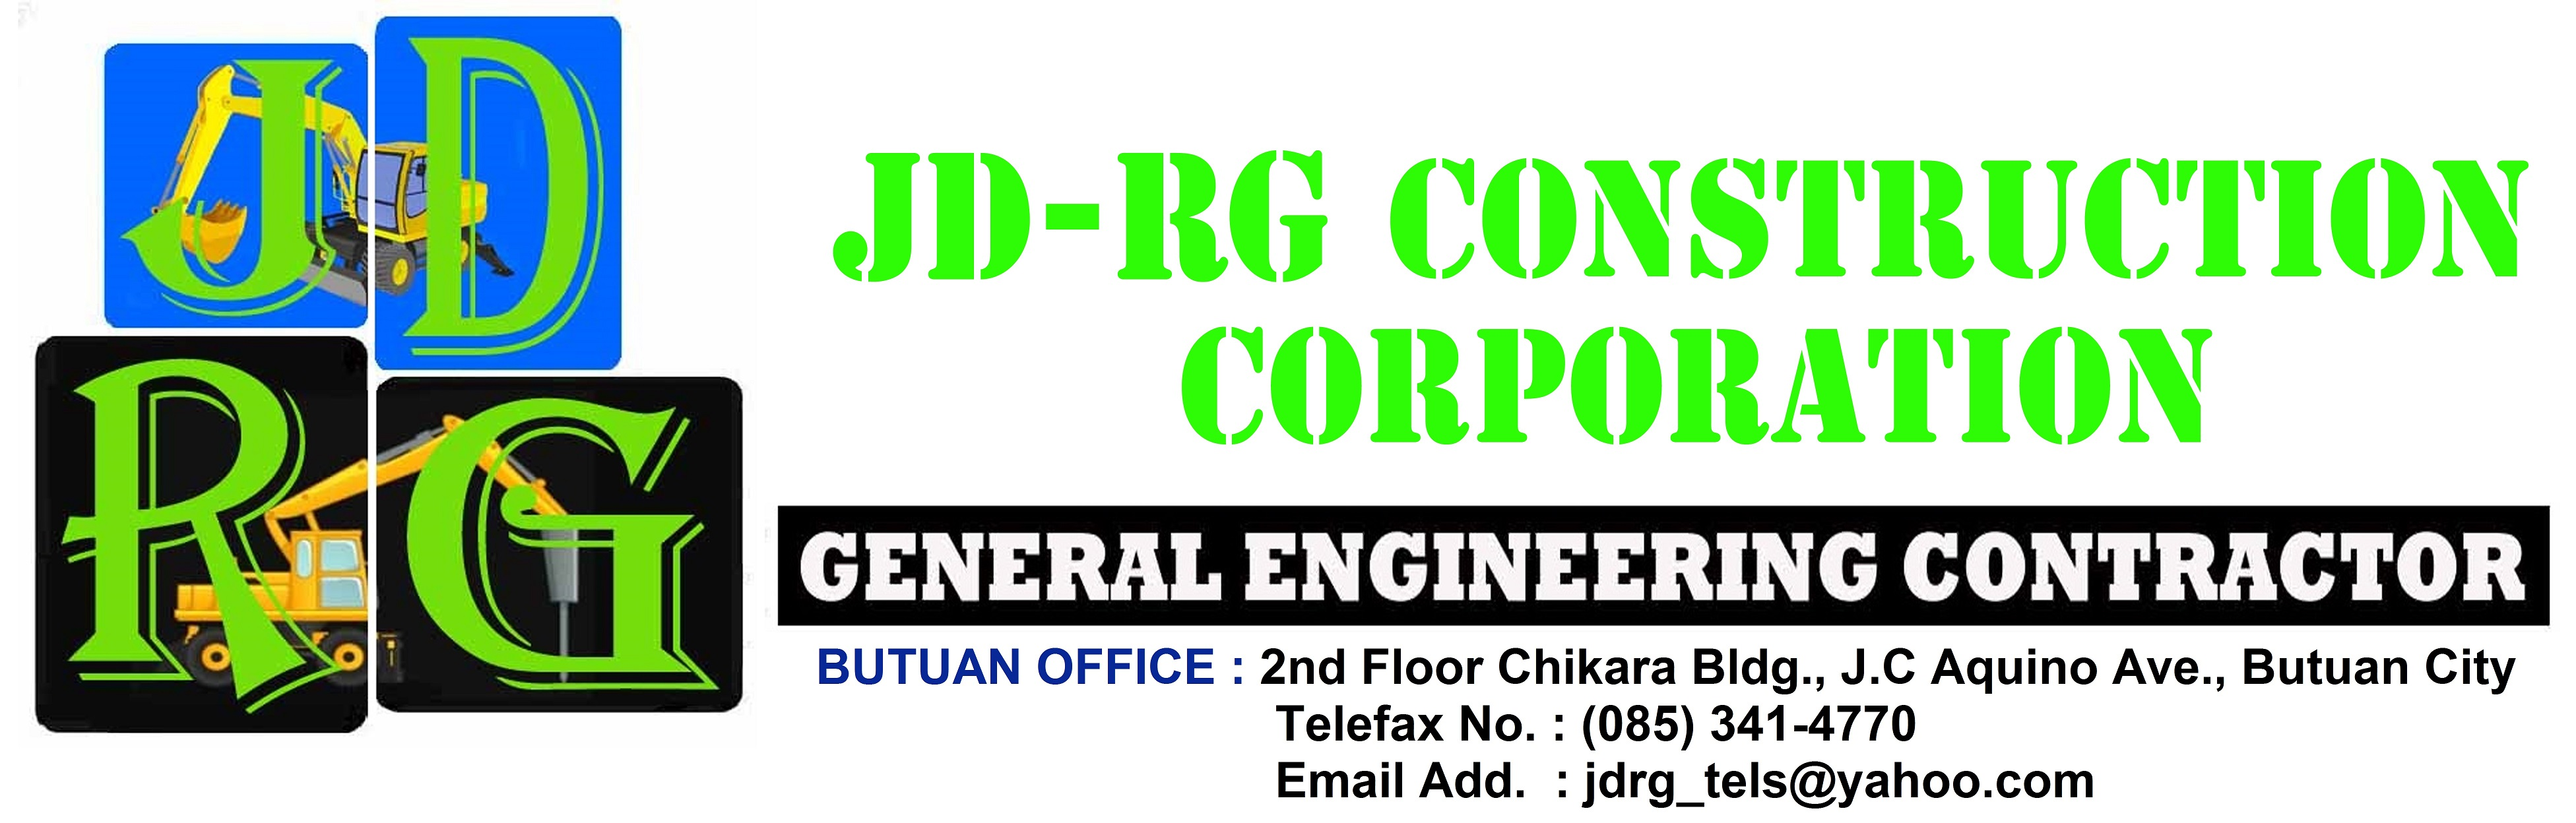 JD-RG Construction Corporation Careers, Company Profile, News